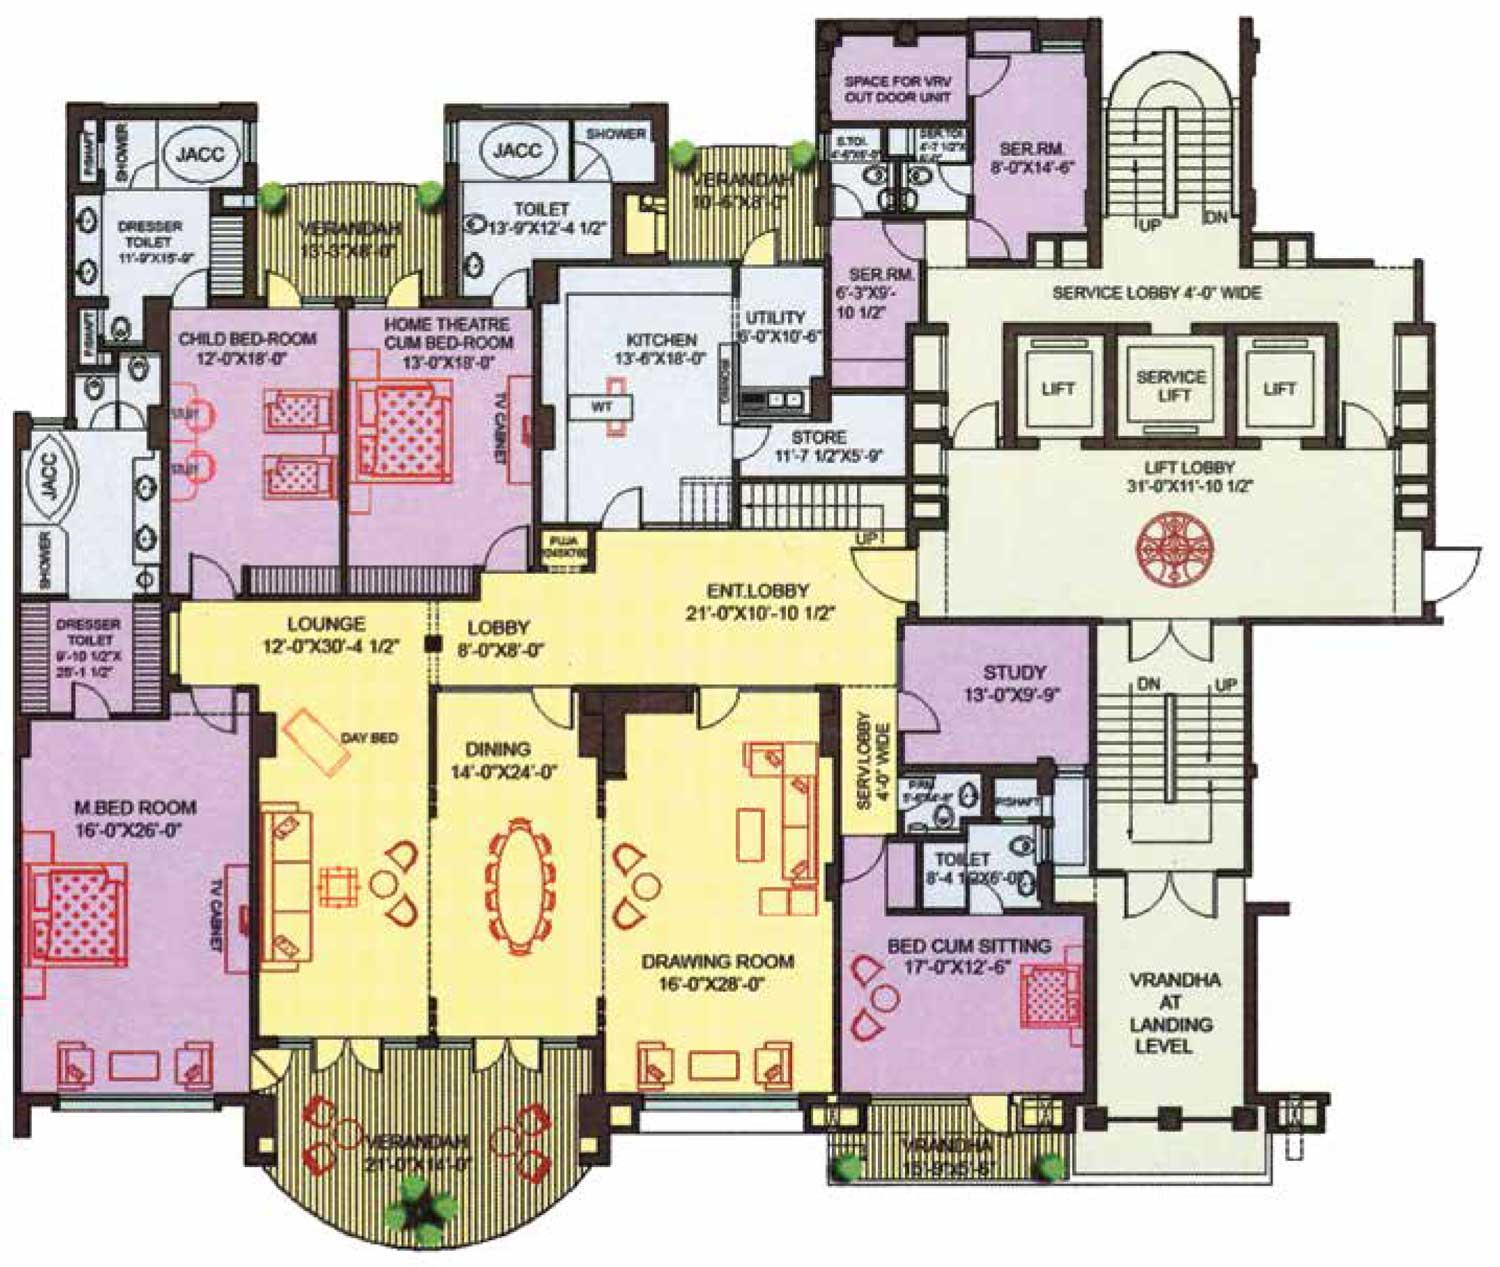 Terrific pent house plans pictures best inspiration home - Ambience home design ...